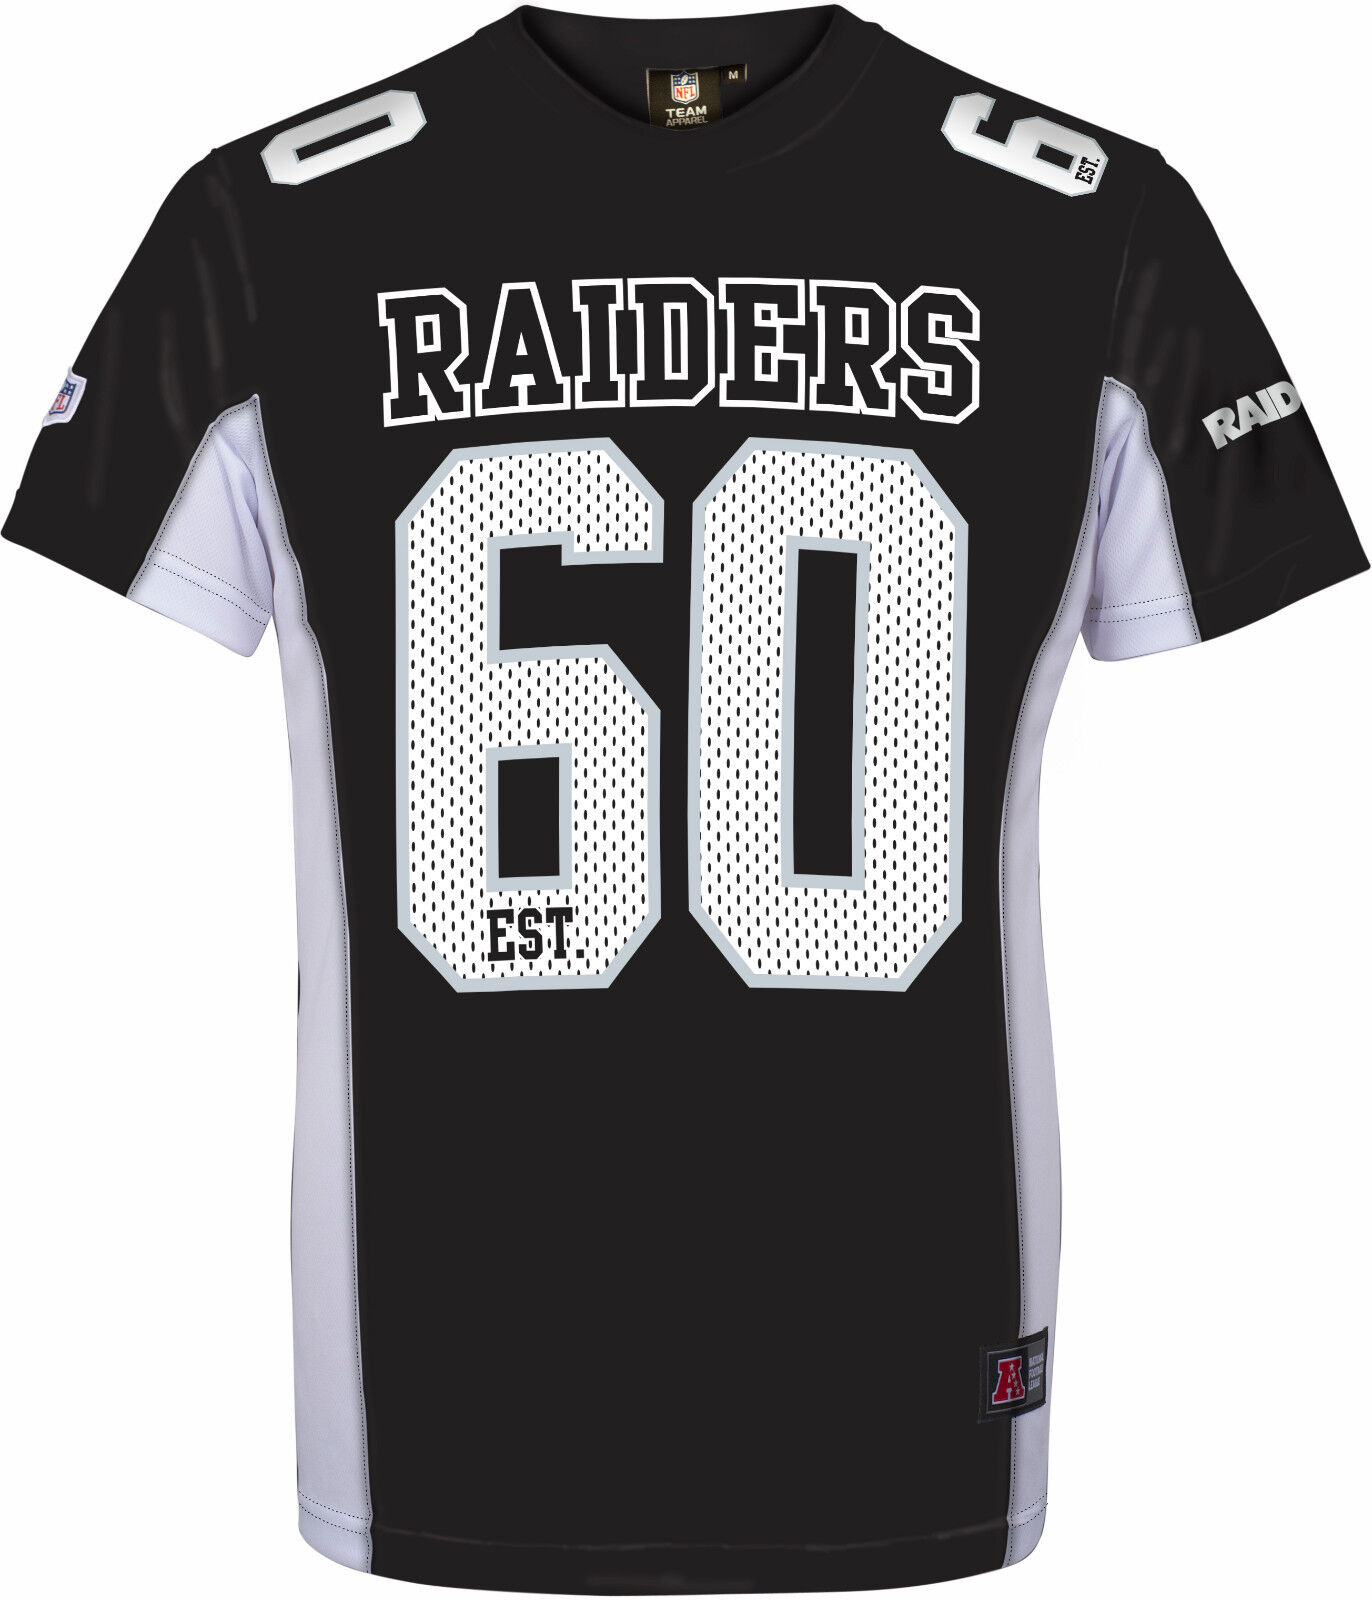 NFL FOOTBALL MAGLIA SHIRT JERSEY JERSEY JERSEY OAKLAND RAIDERS 60 moro nero established 35dc10